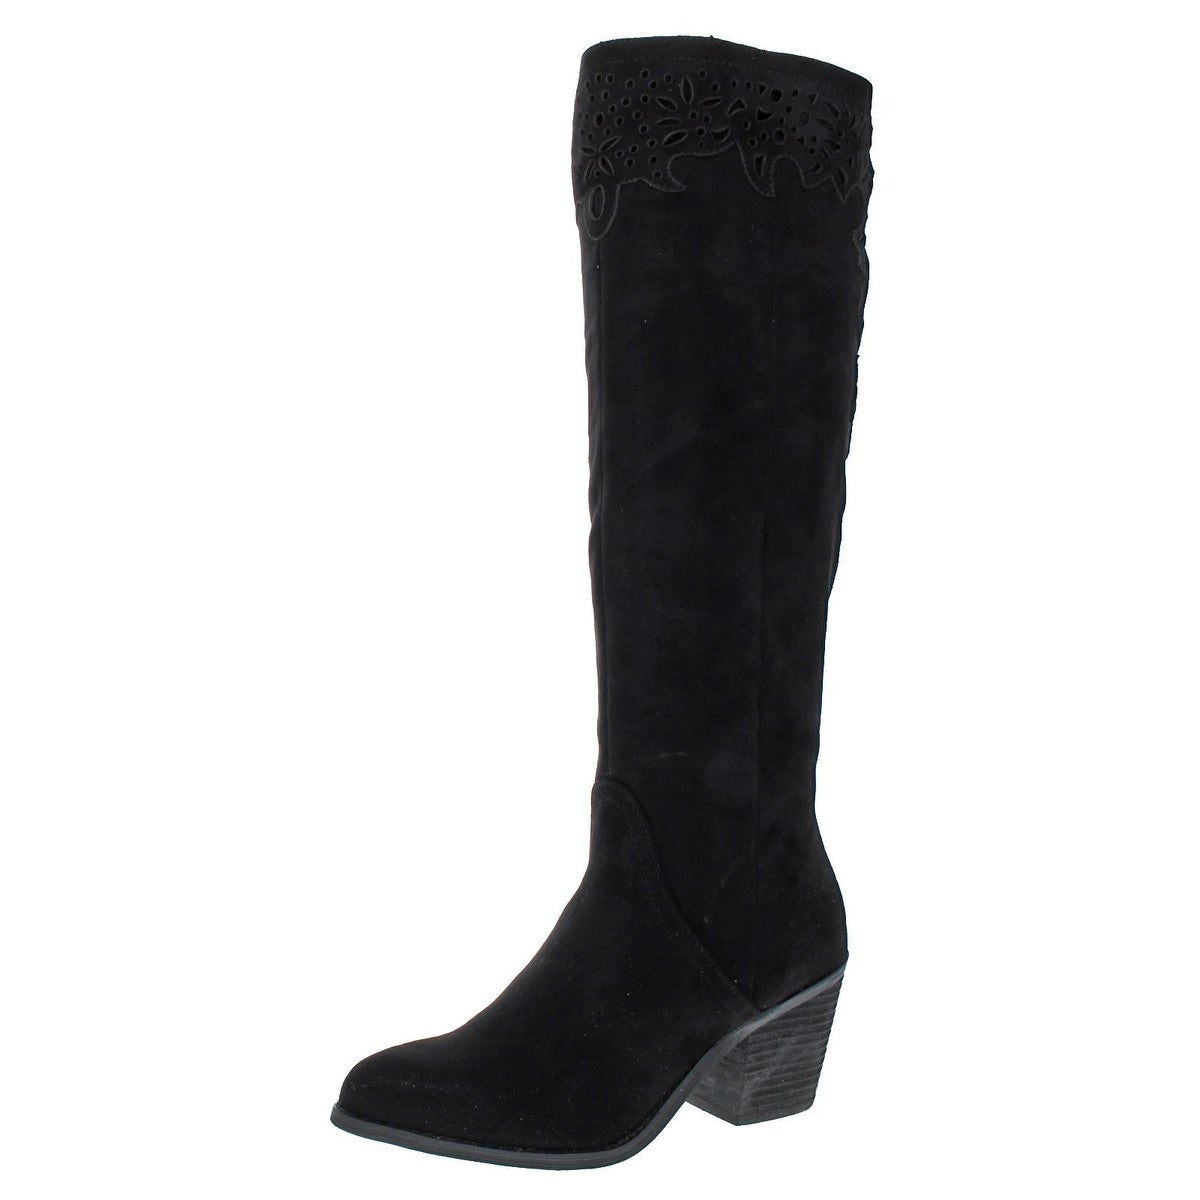 ba73c334bf0e Buy Black Not Rated Women's Boots Online at Overstock | Our Best Women's  Shoes Deals